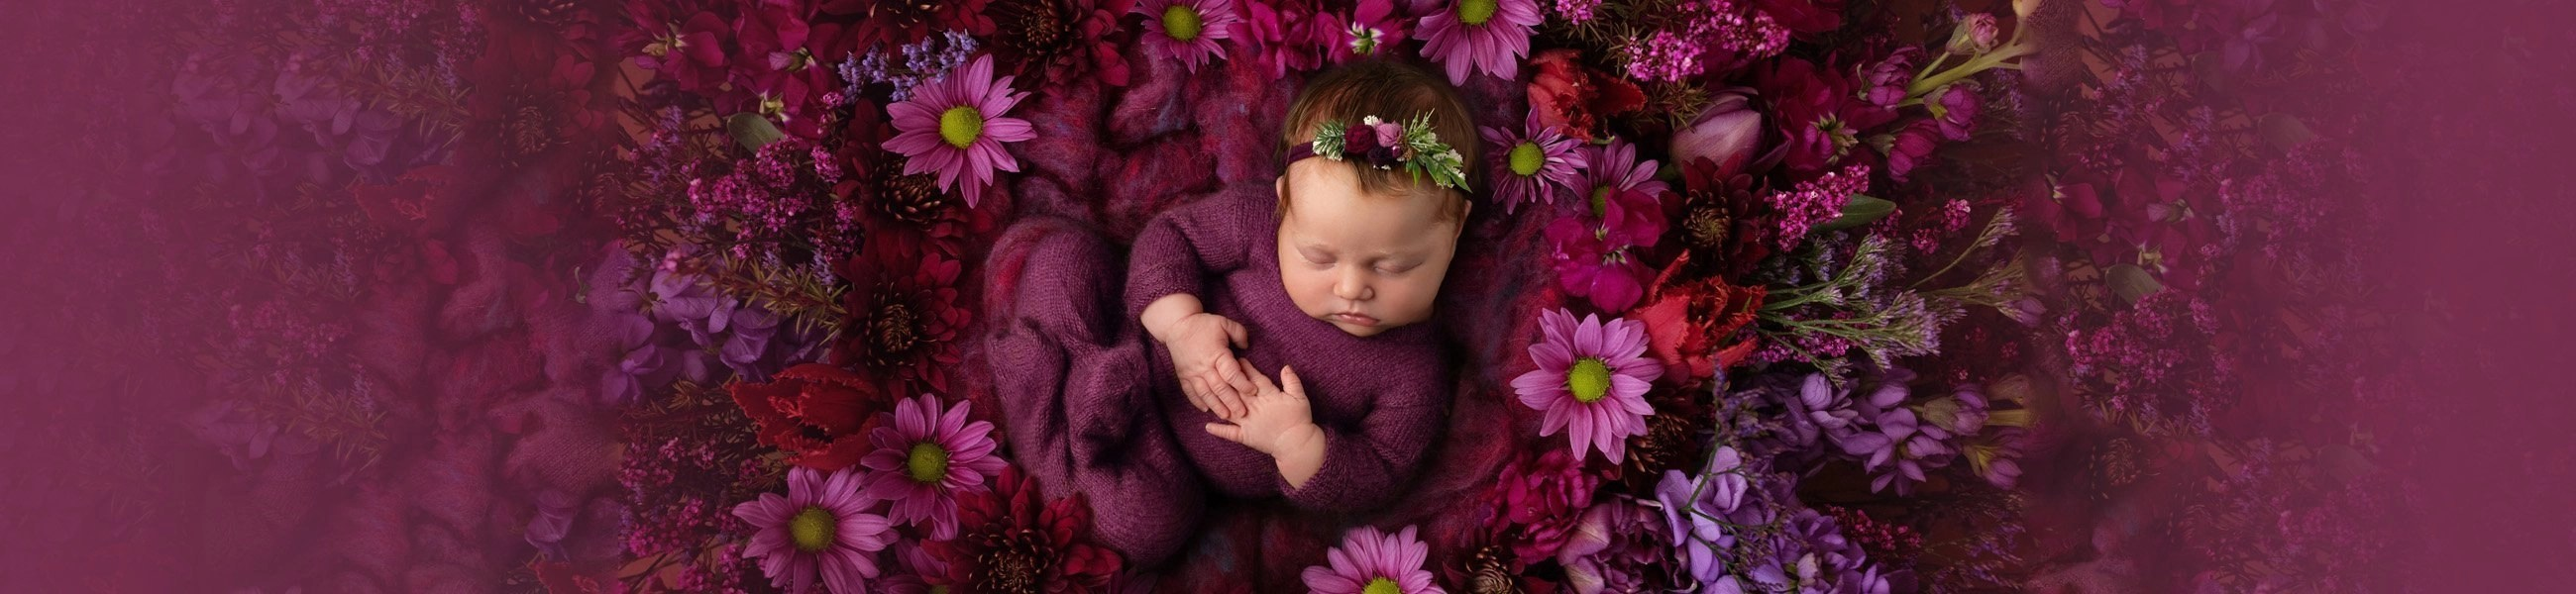 akron-ohio-newborn-photography